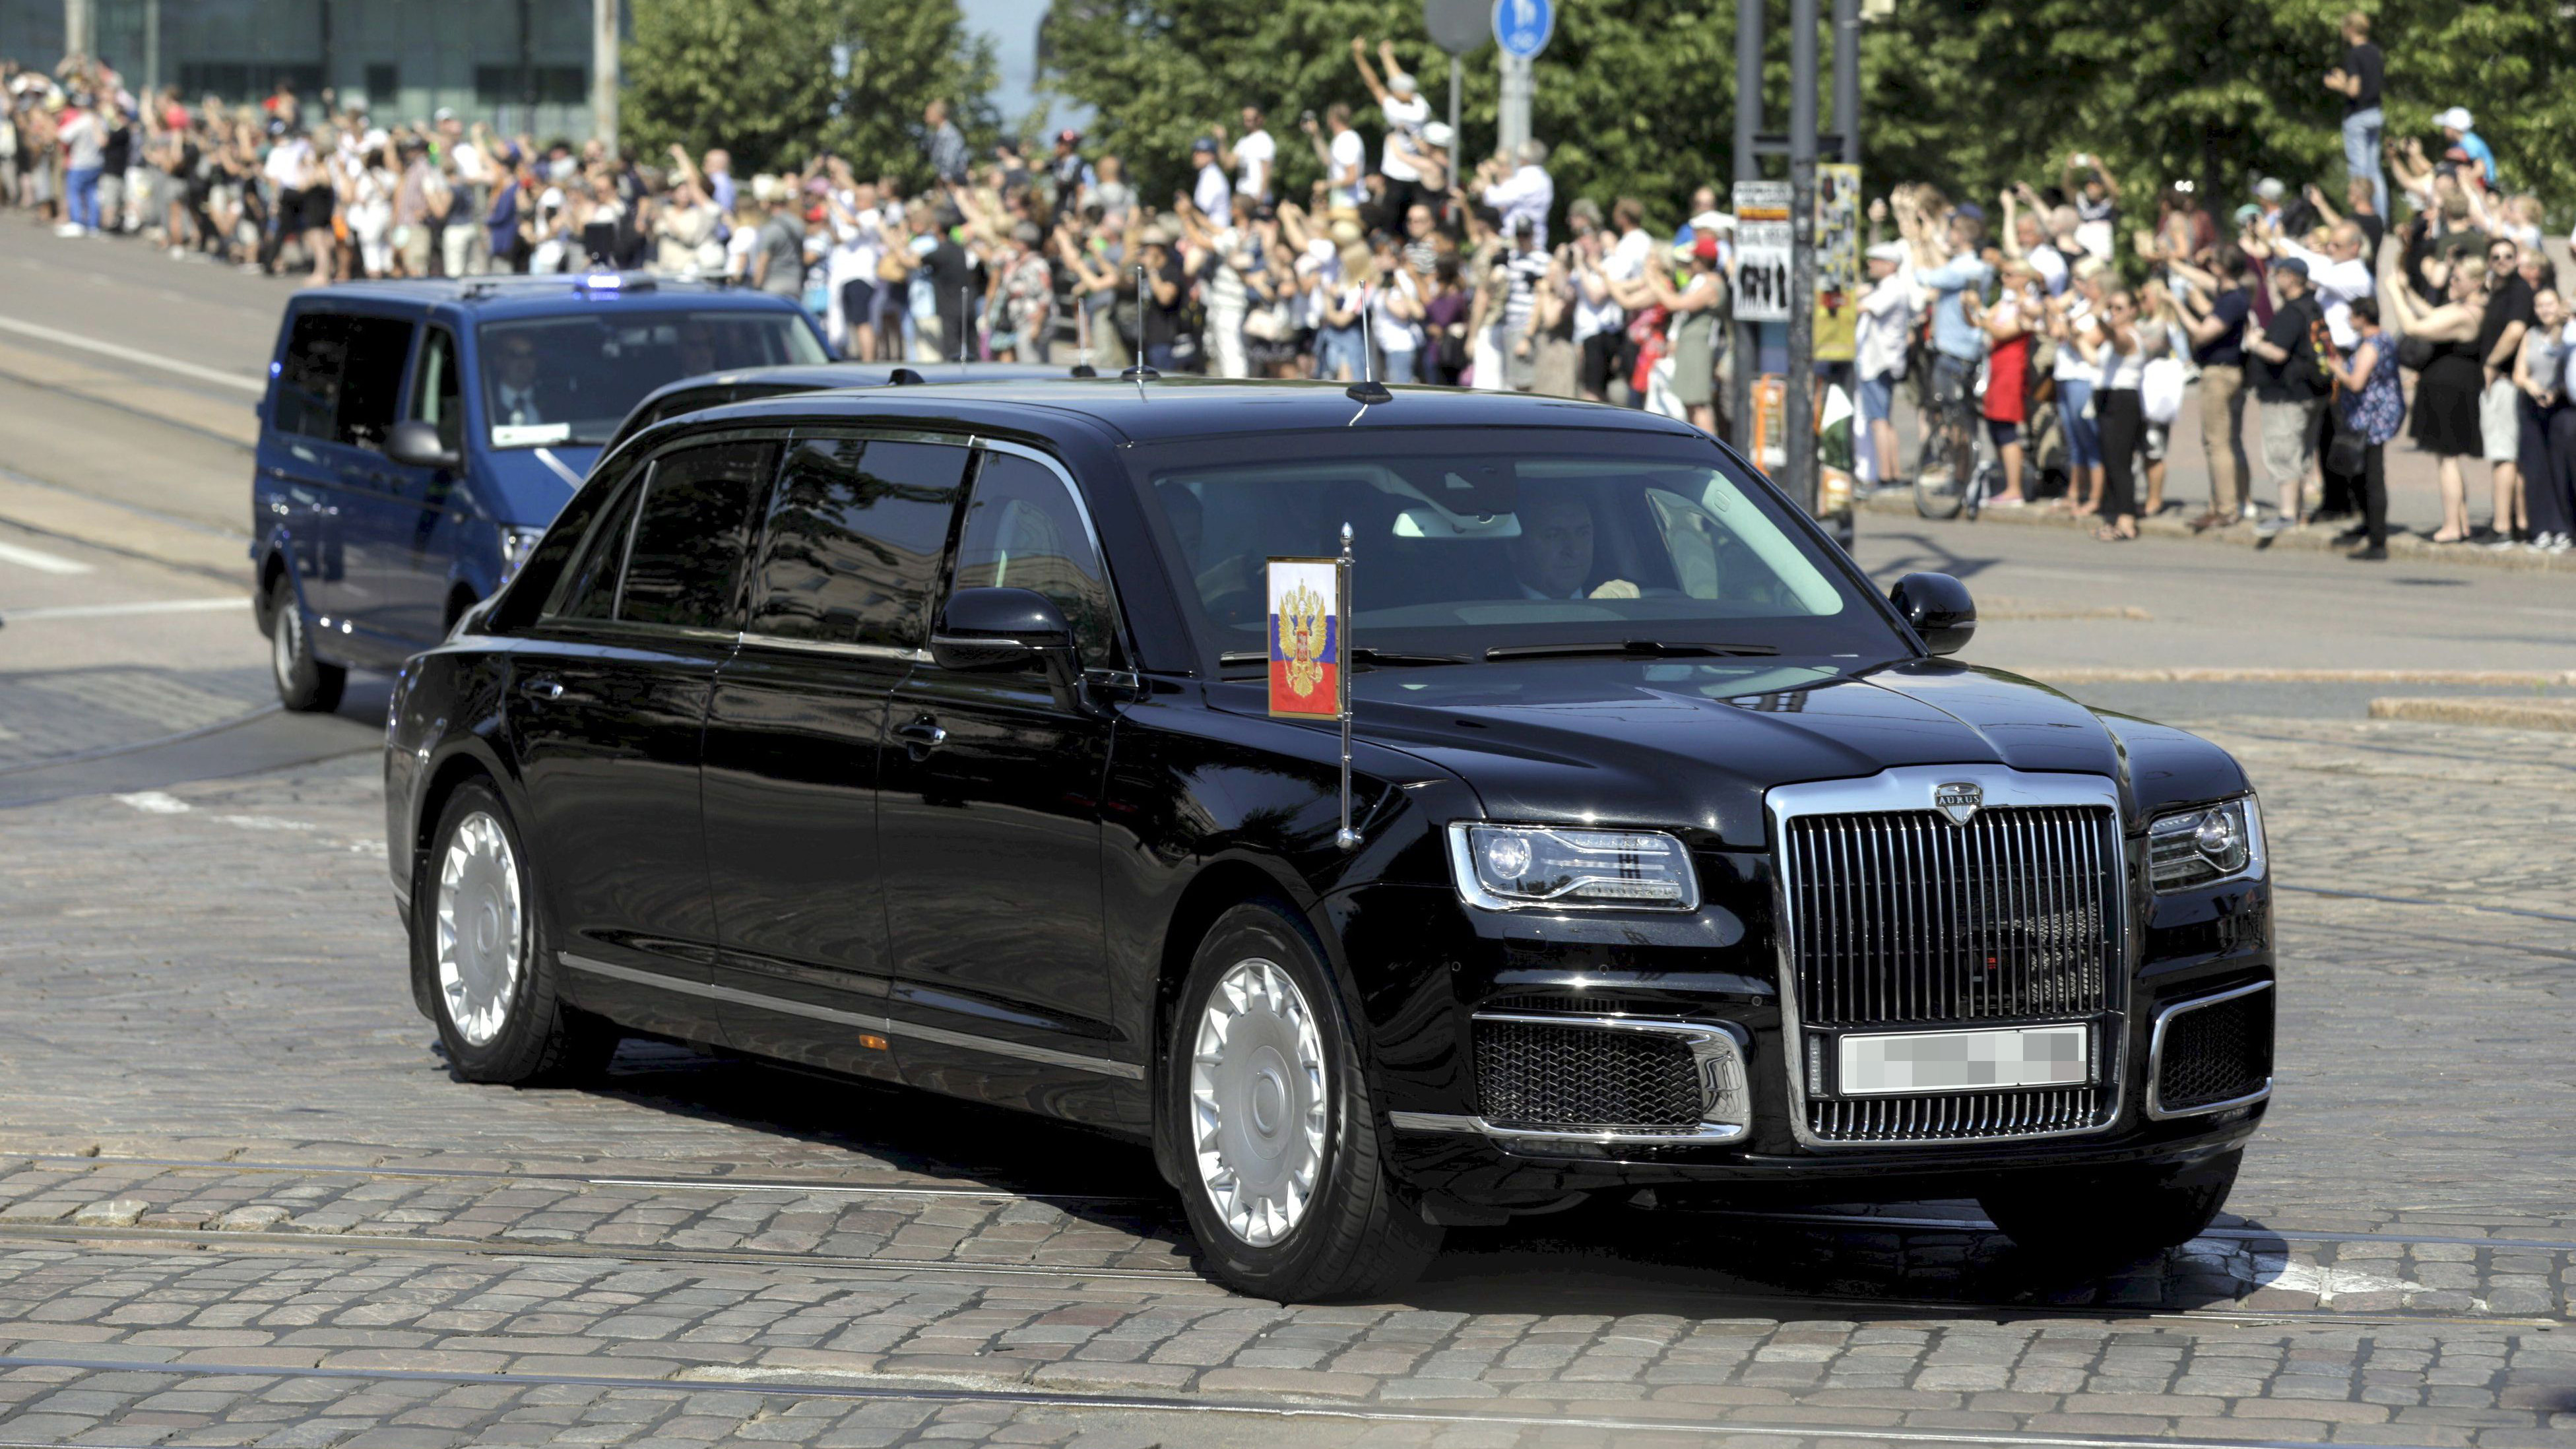 Putin's car looks like a Rolls Royce mated with The Beast